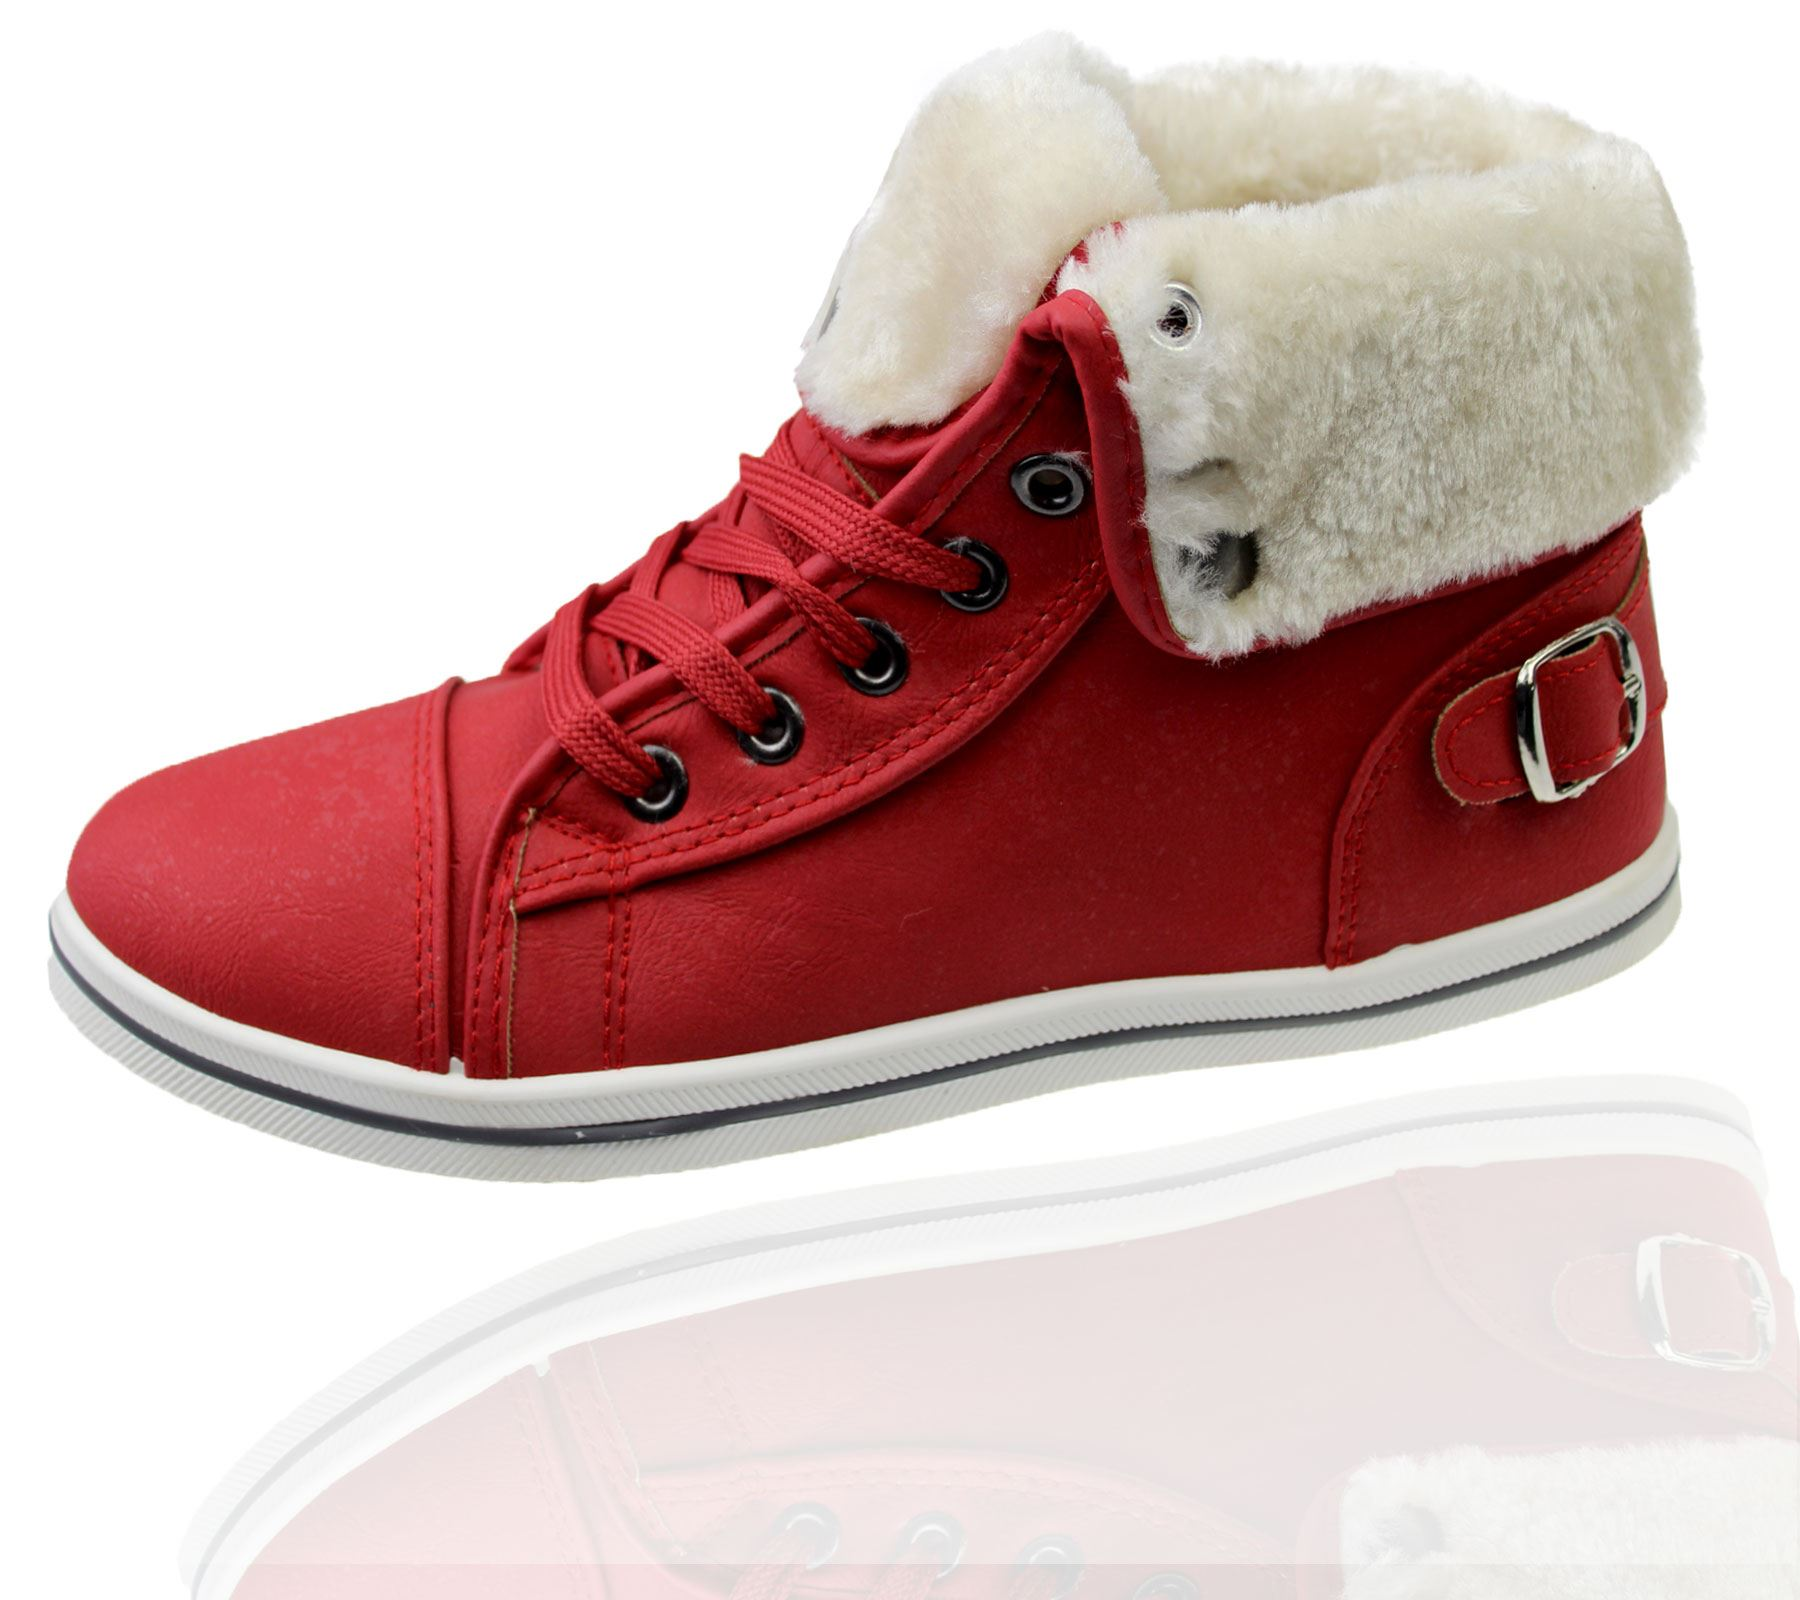 Girls-Boots-Womens-Warm-Lined-High-Top-Ankle-Trainer-Ladies-Winter-Shoes-Size miniatura 48